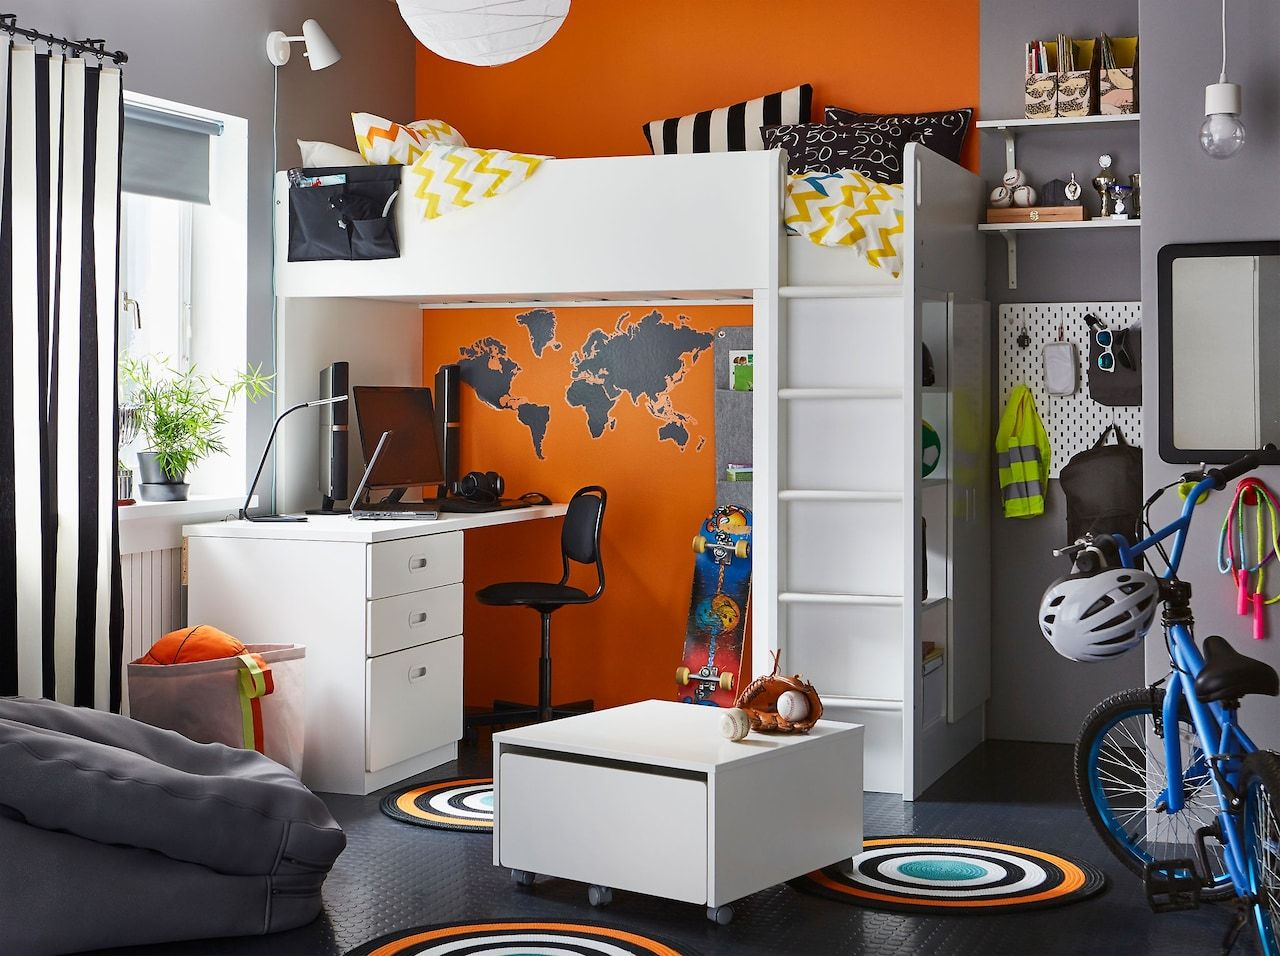 Grey loft bed with desk  A black grey orange and white bedroom for a child in their pre